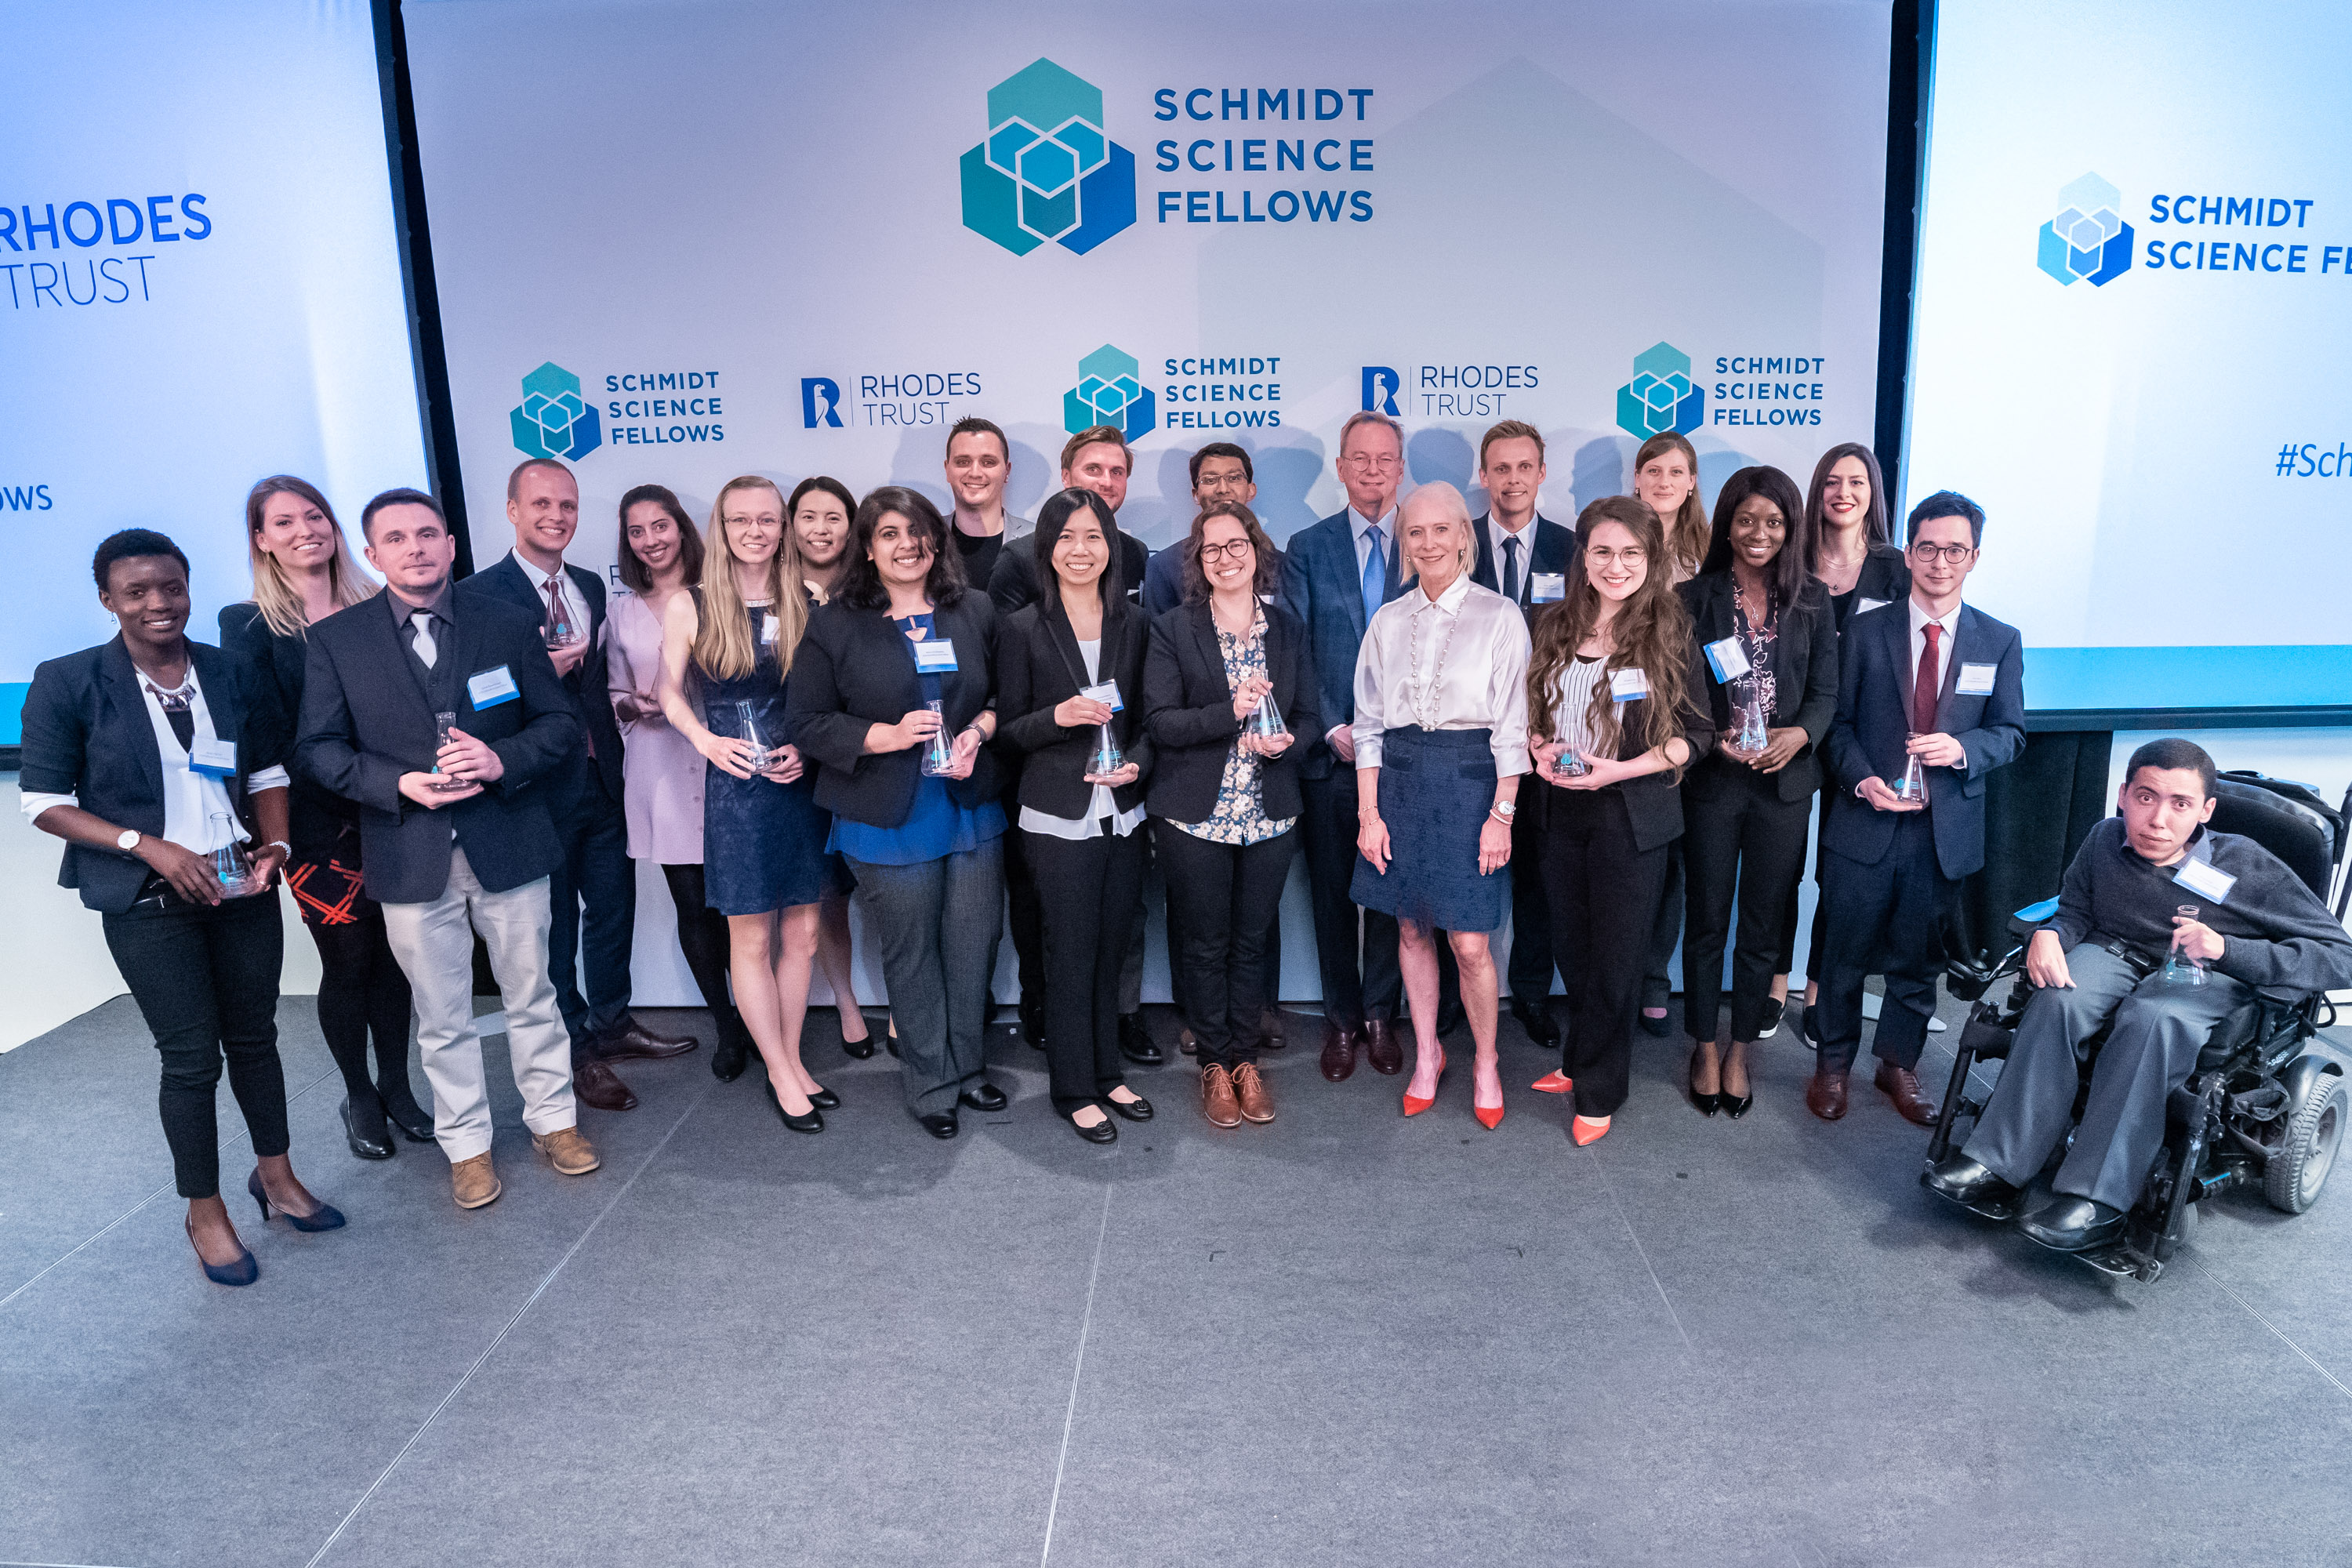 The 2019 Class of Schmidt Science Fellows. Photo by Adam Schultz.